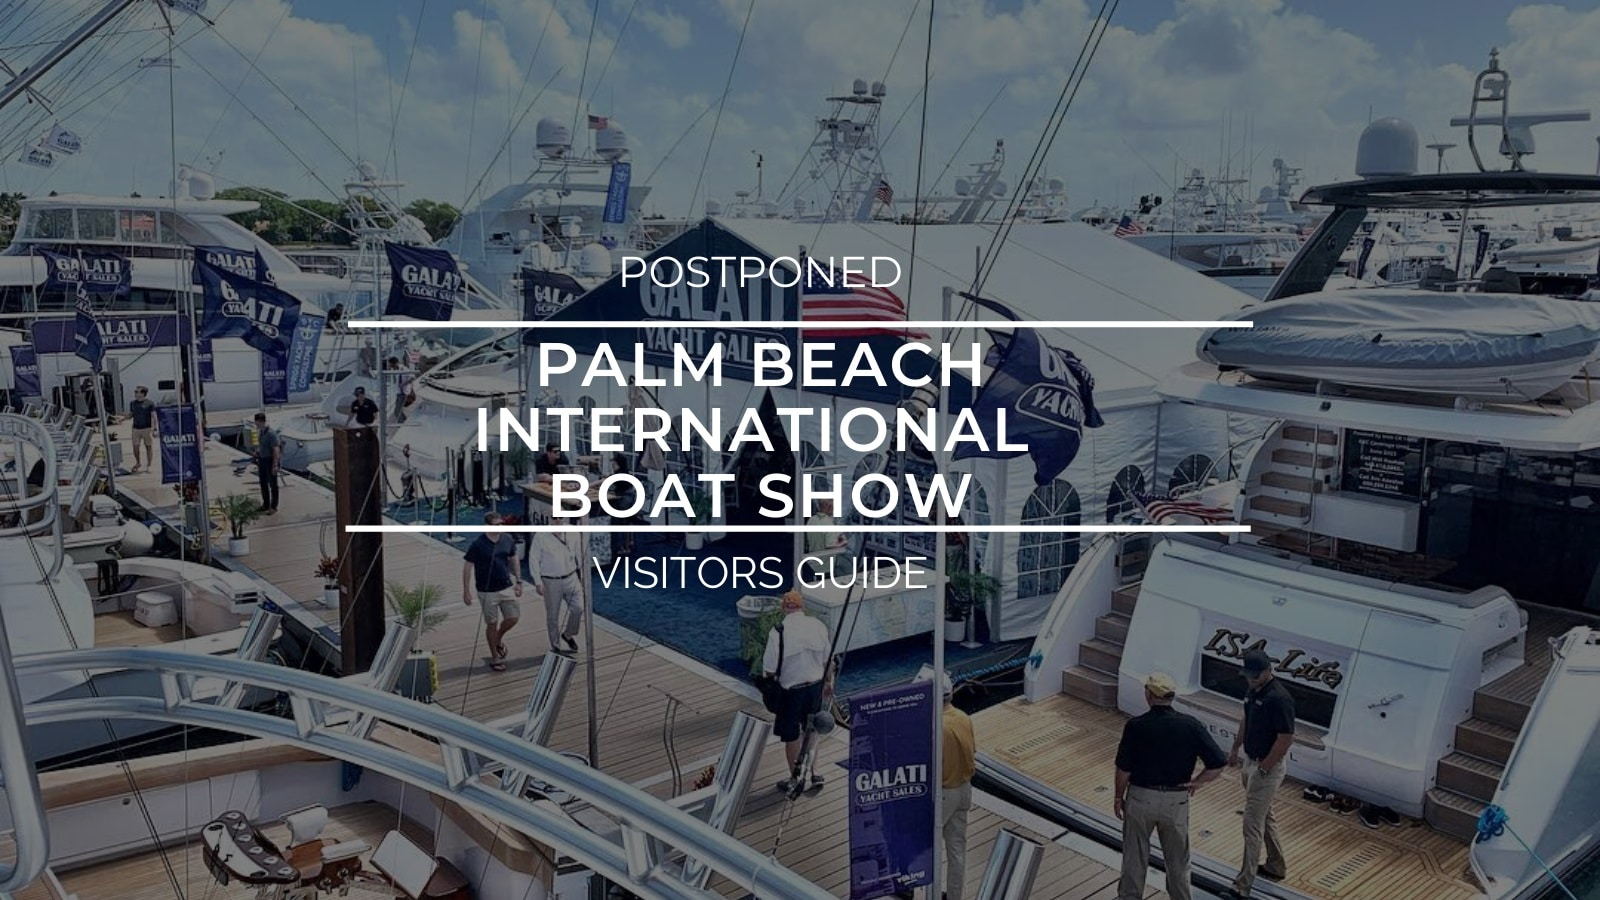 Palm Beach International Boat Show Visitors Guide